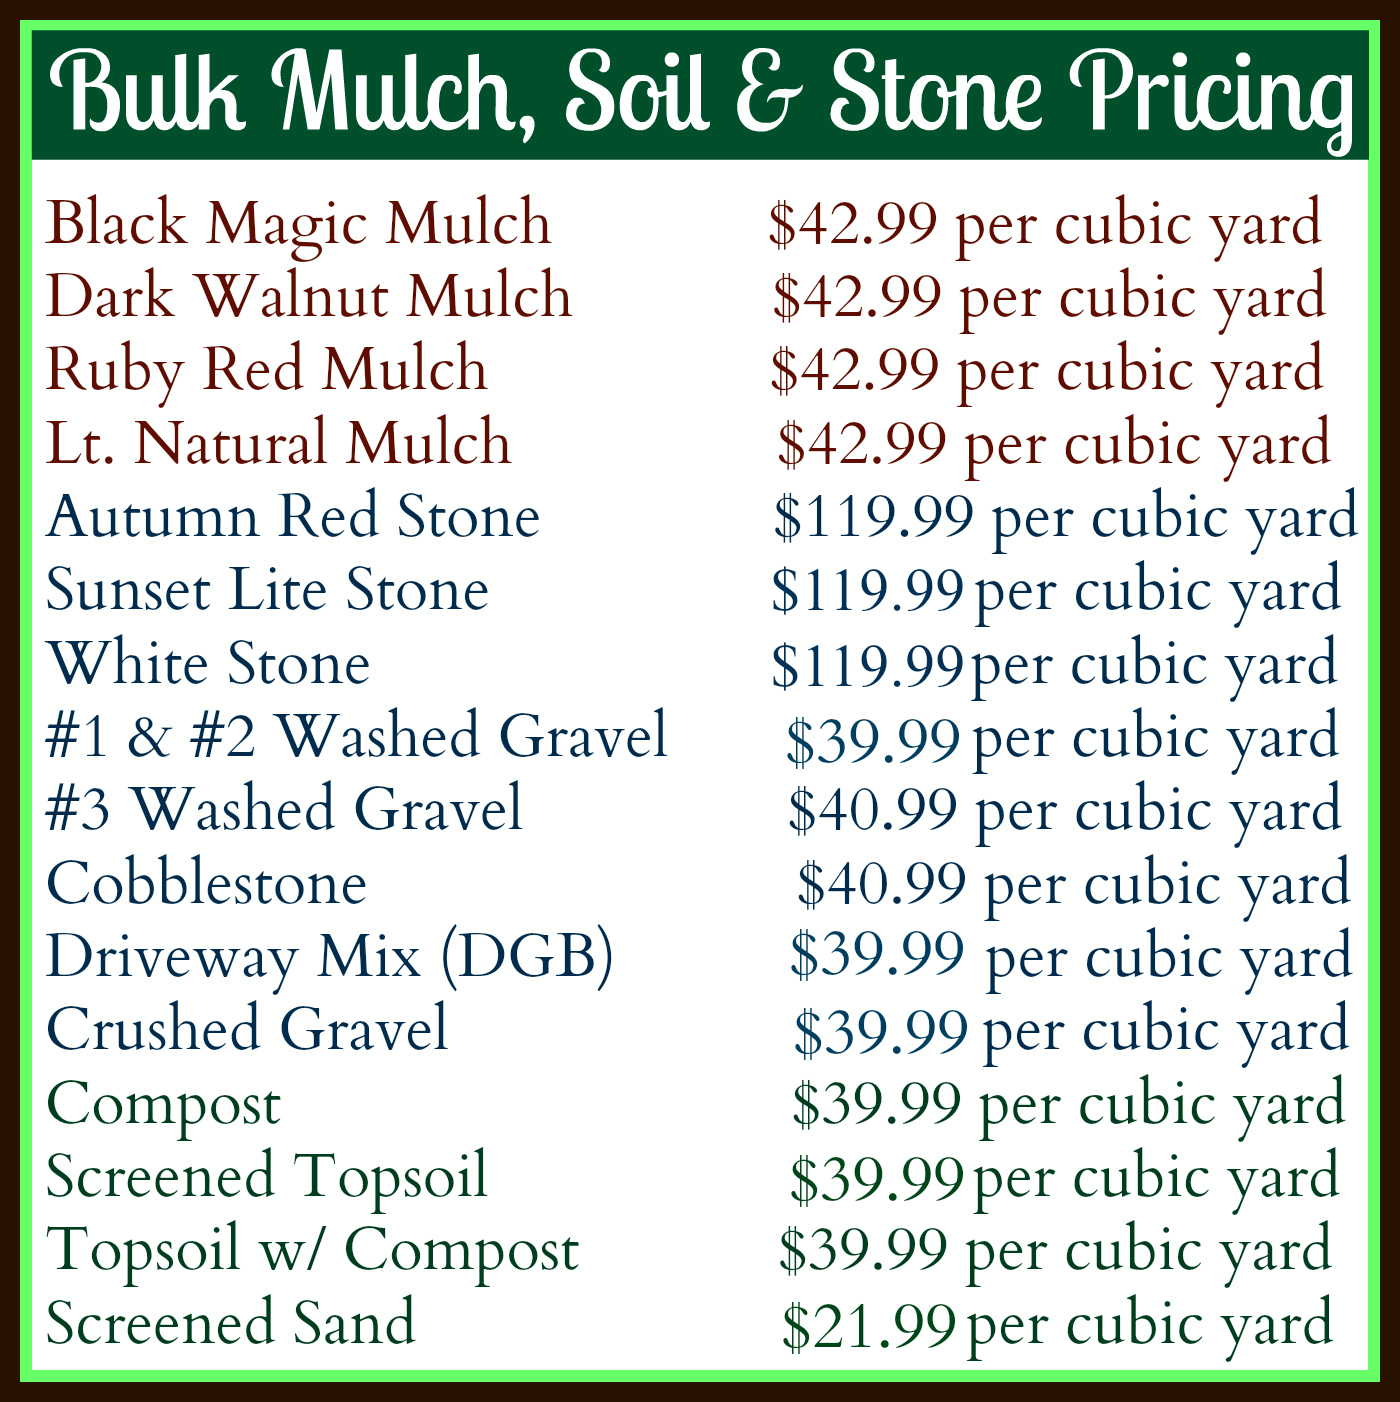 How Much Does A Yard Of Gravel Weigh >> Mulch & More - GreenScapes Garden Center & Landscape Co.GreenScapes Garden Center & Landscape Co.